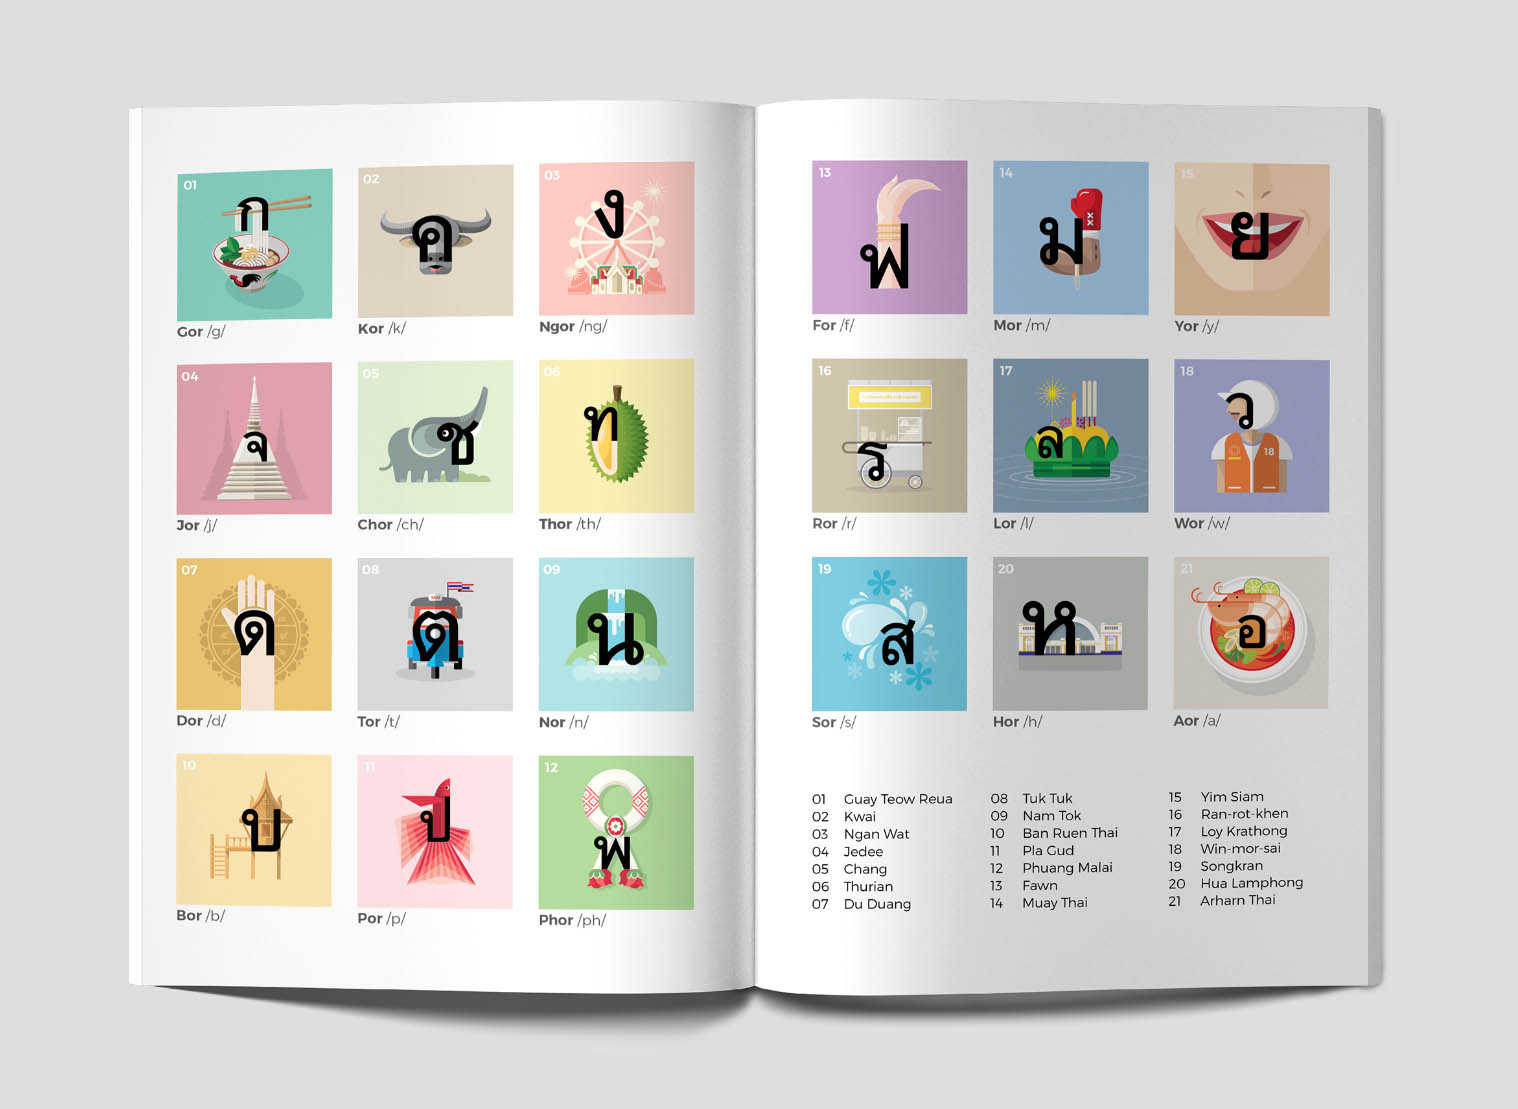 Double page spread spread for Culturalphabet, the book highlights the most commonly used Thai letters and brings them to life with attractive illustrations, to aid learning basic Thai in an easy and engaging way